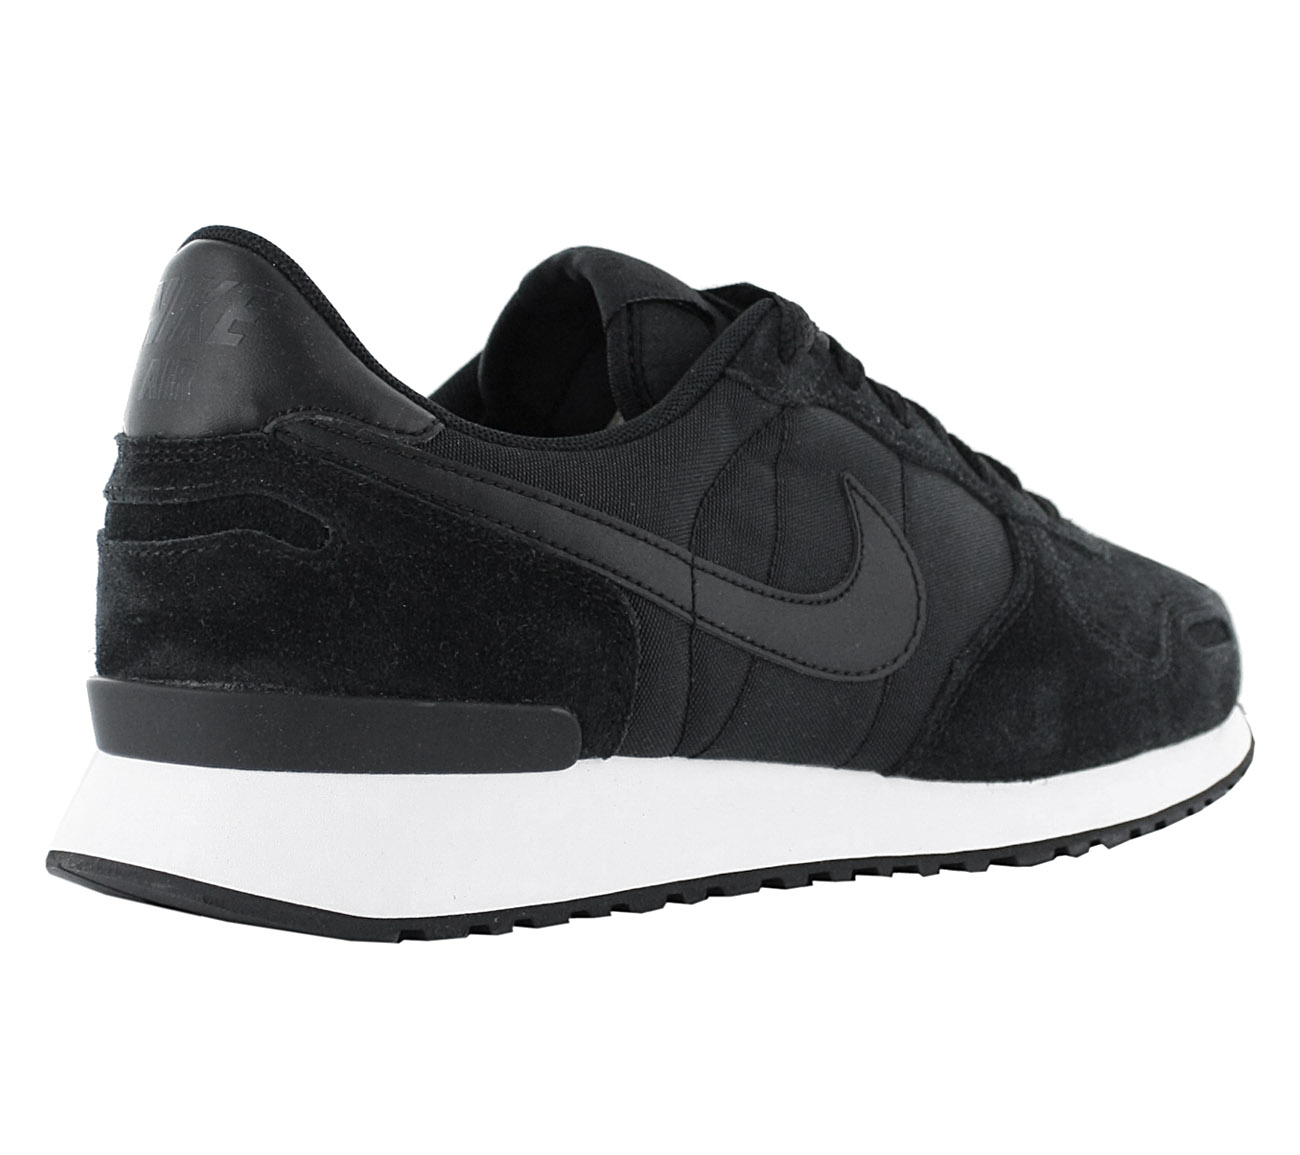 NEW Air Nike Air NEW Vortex LTR 918206-001 Mens Shoes Trainers Sneakers SALE 4c8408